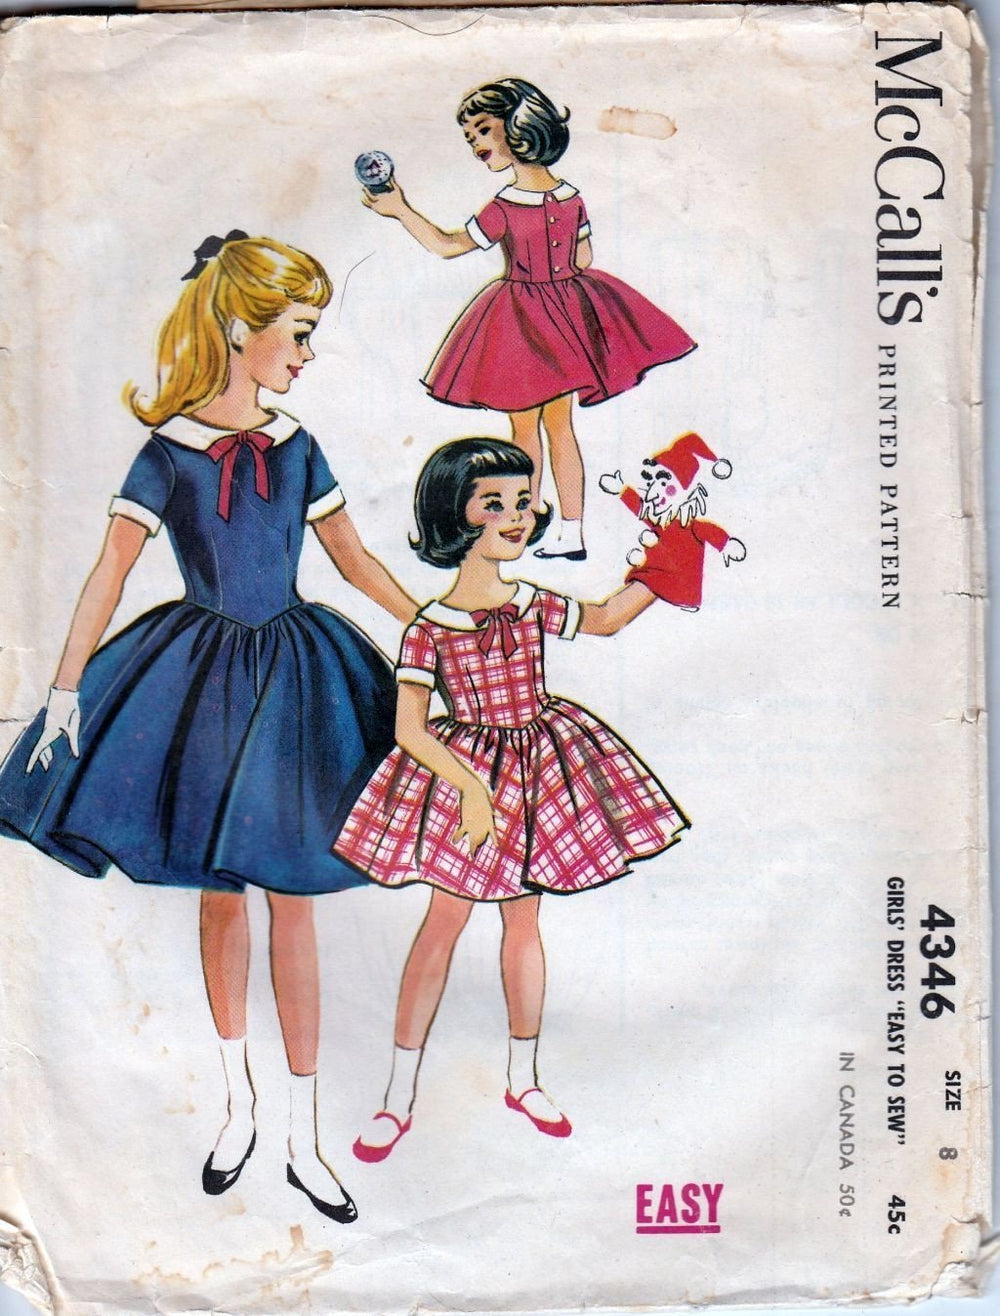 McCall's 4346 Vintage 1950's Sewing Pattern Young Girls Rockabilly Dress - VintageStitching - Vintage Sewing Patterns